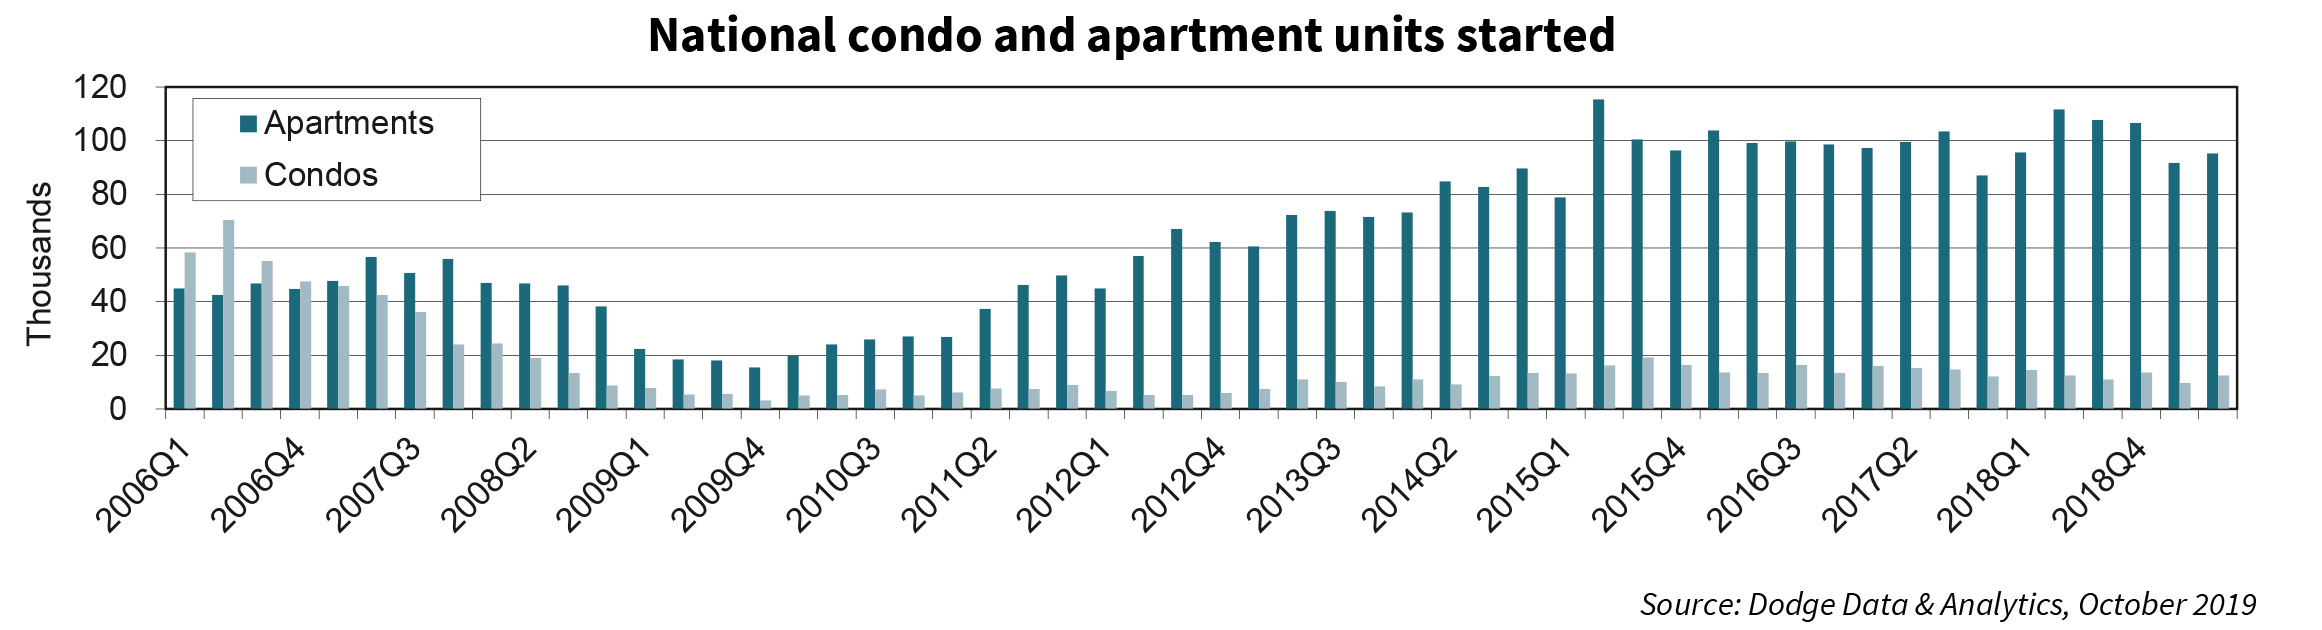 National condo and apartment units started